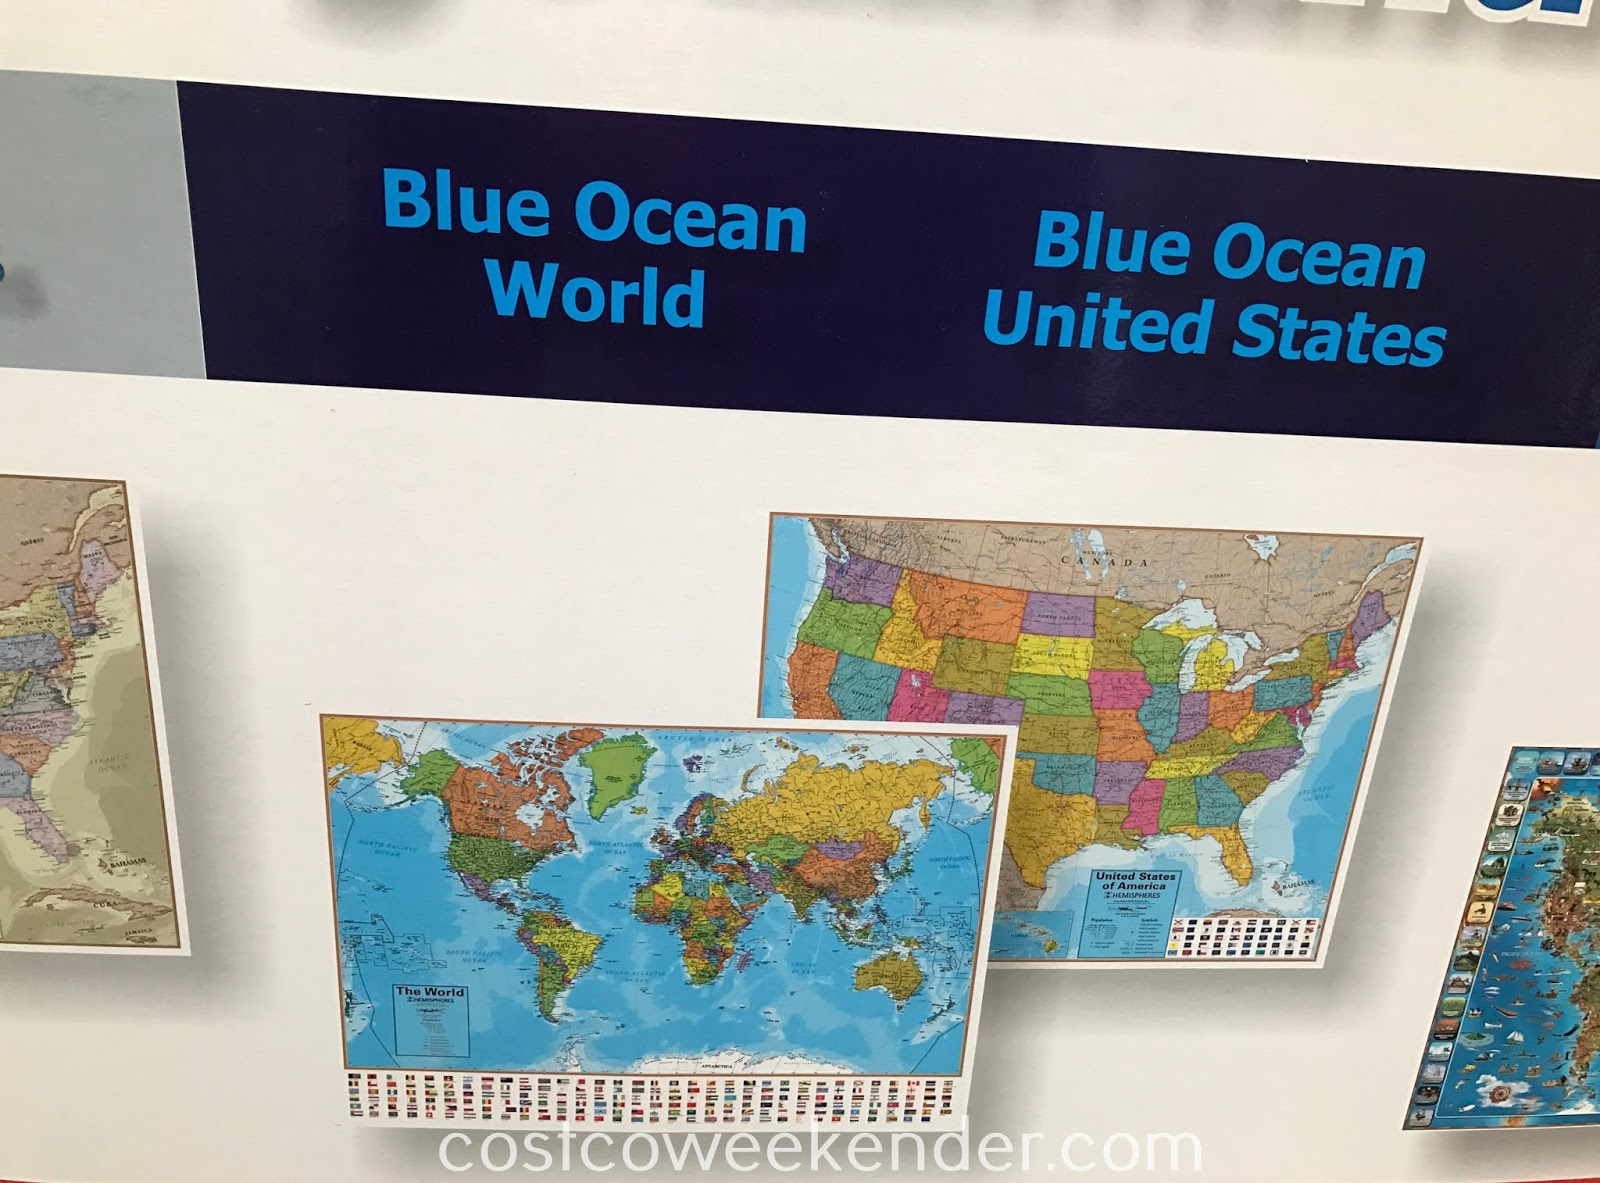 Costco 431464 - Learn about the US and the rest of the world with the Blue Ocean World & United States map